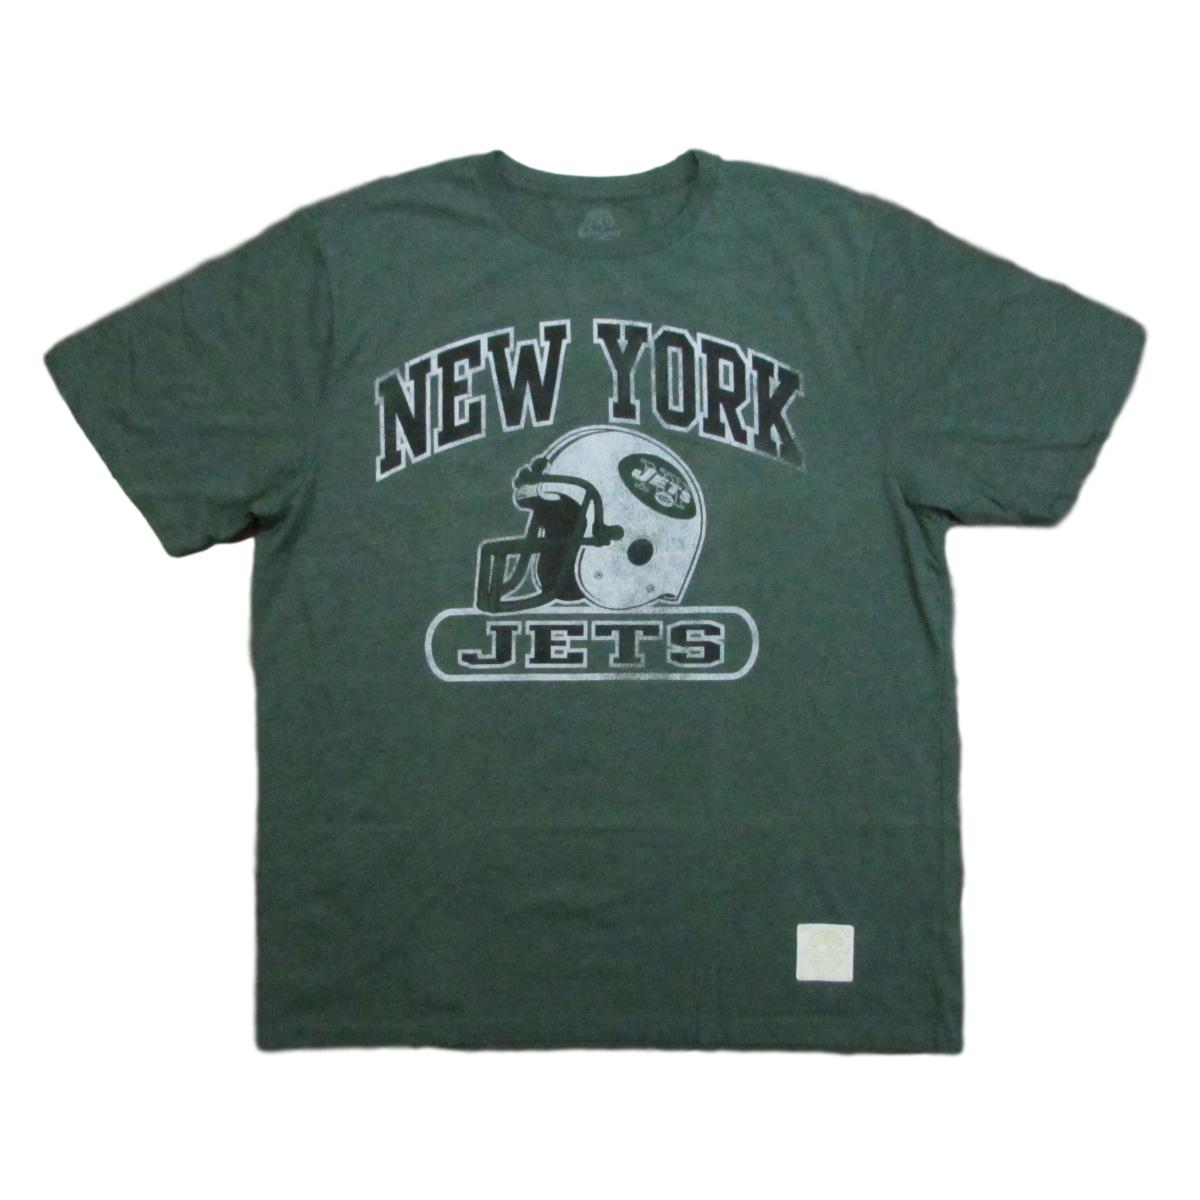 New York Jets Lightweight Football T-Shirt Retro Sport Sz XL